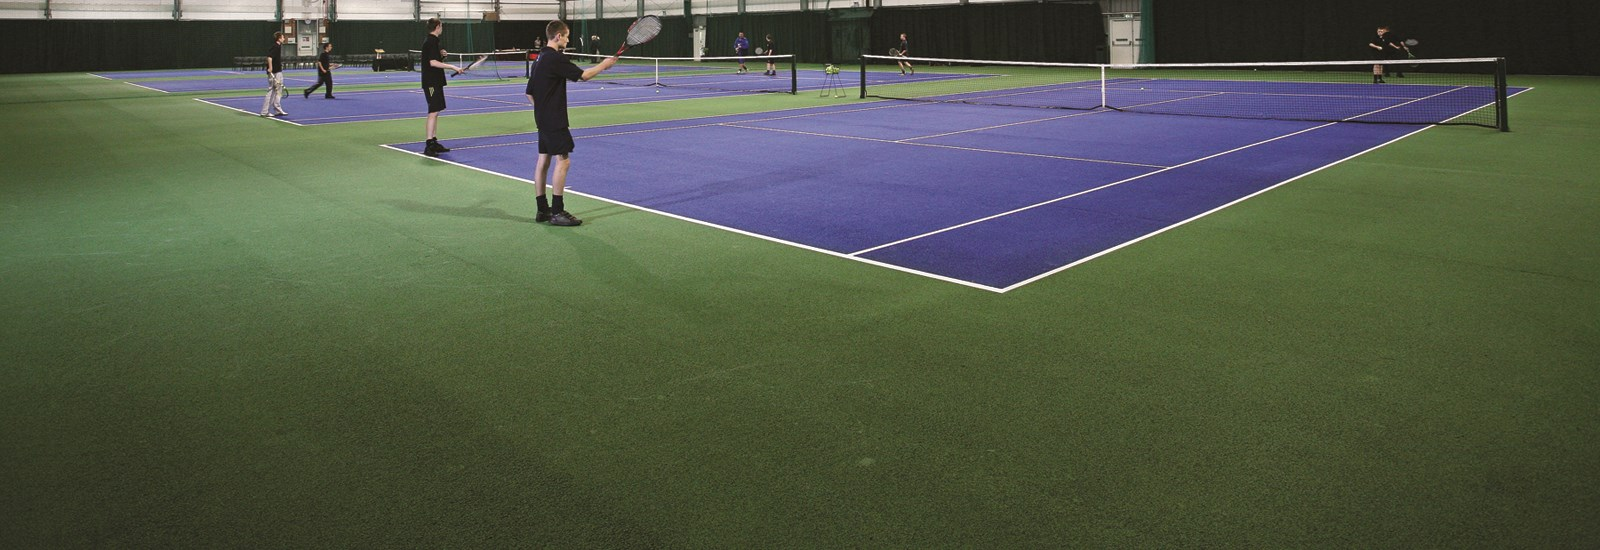 indoor-sports-center-tennis-@-churchill